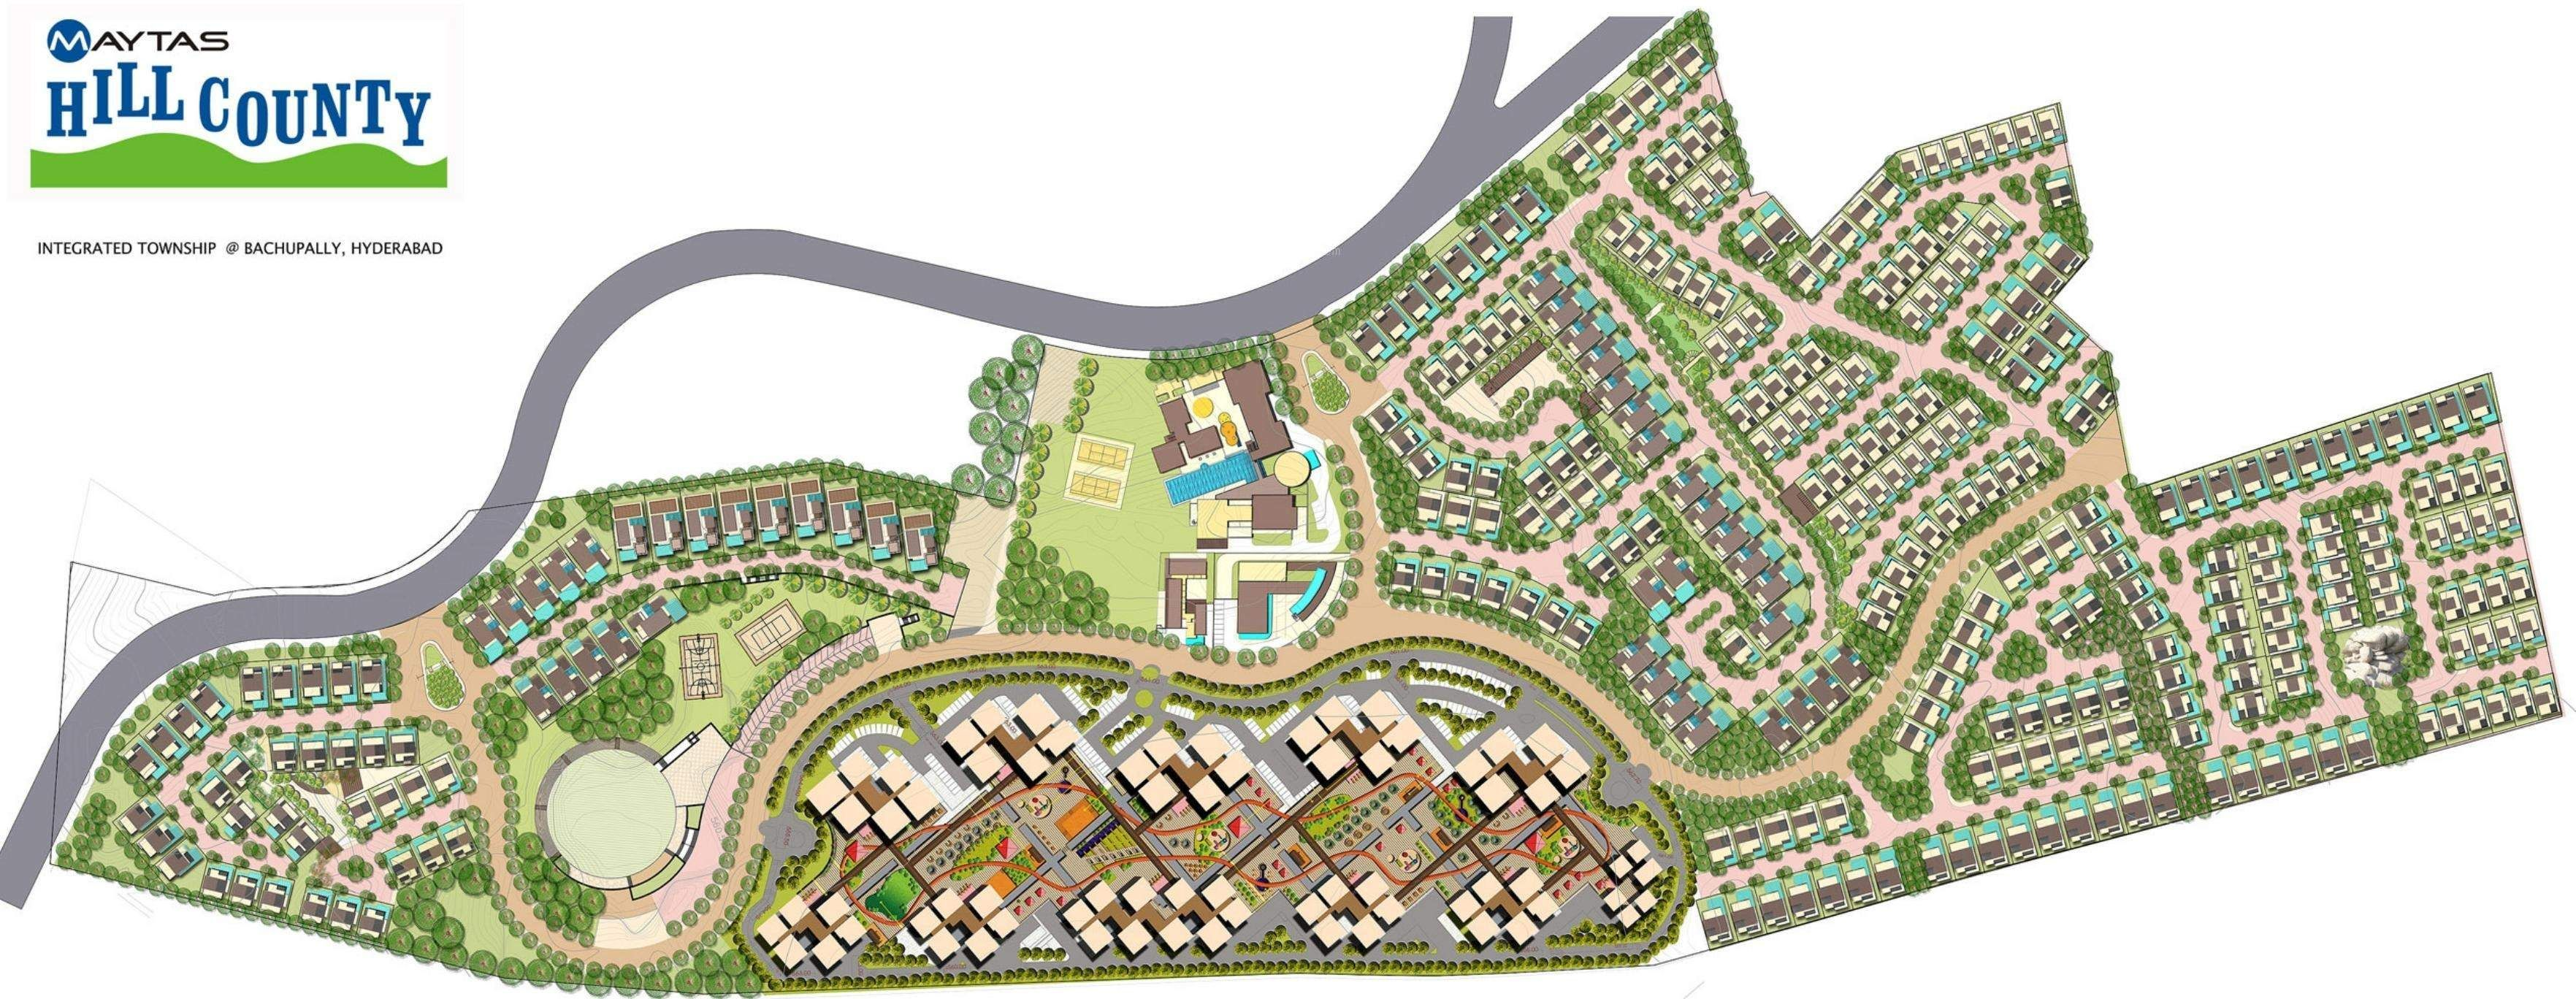 Maytas Properties Hill County Villa Master Plan 312158 Jpeg 3527 1368 Architecture Concept Drawings Master Plan Concept Architecture